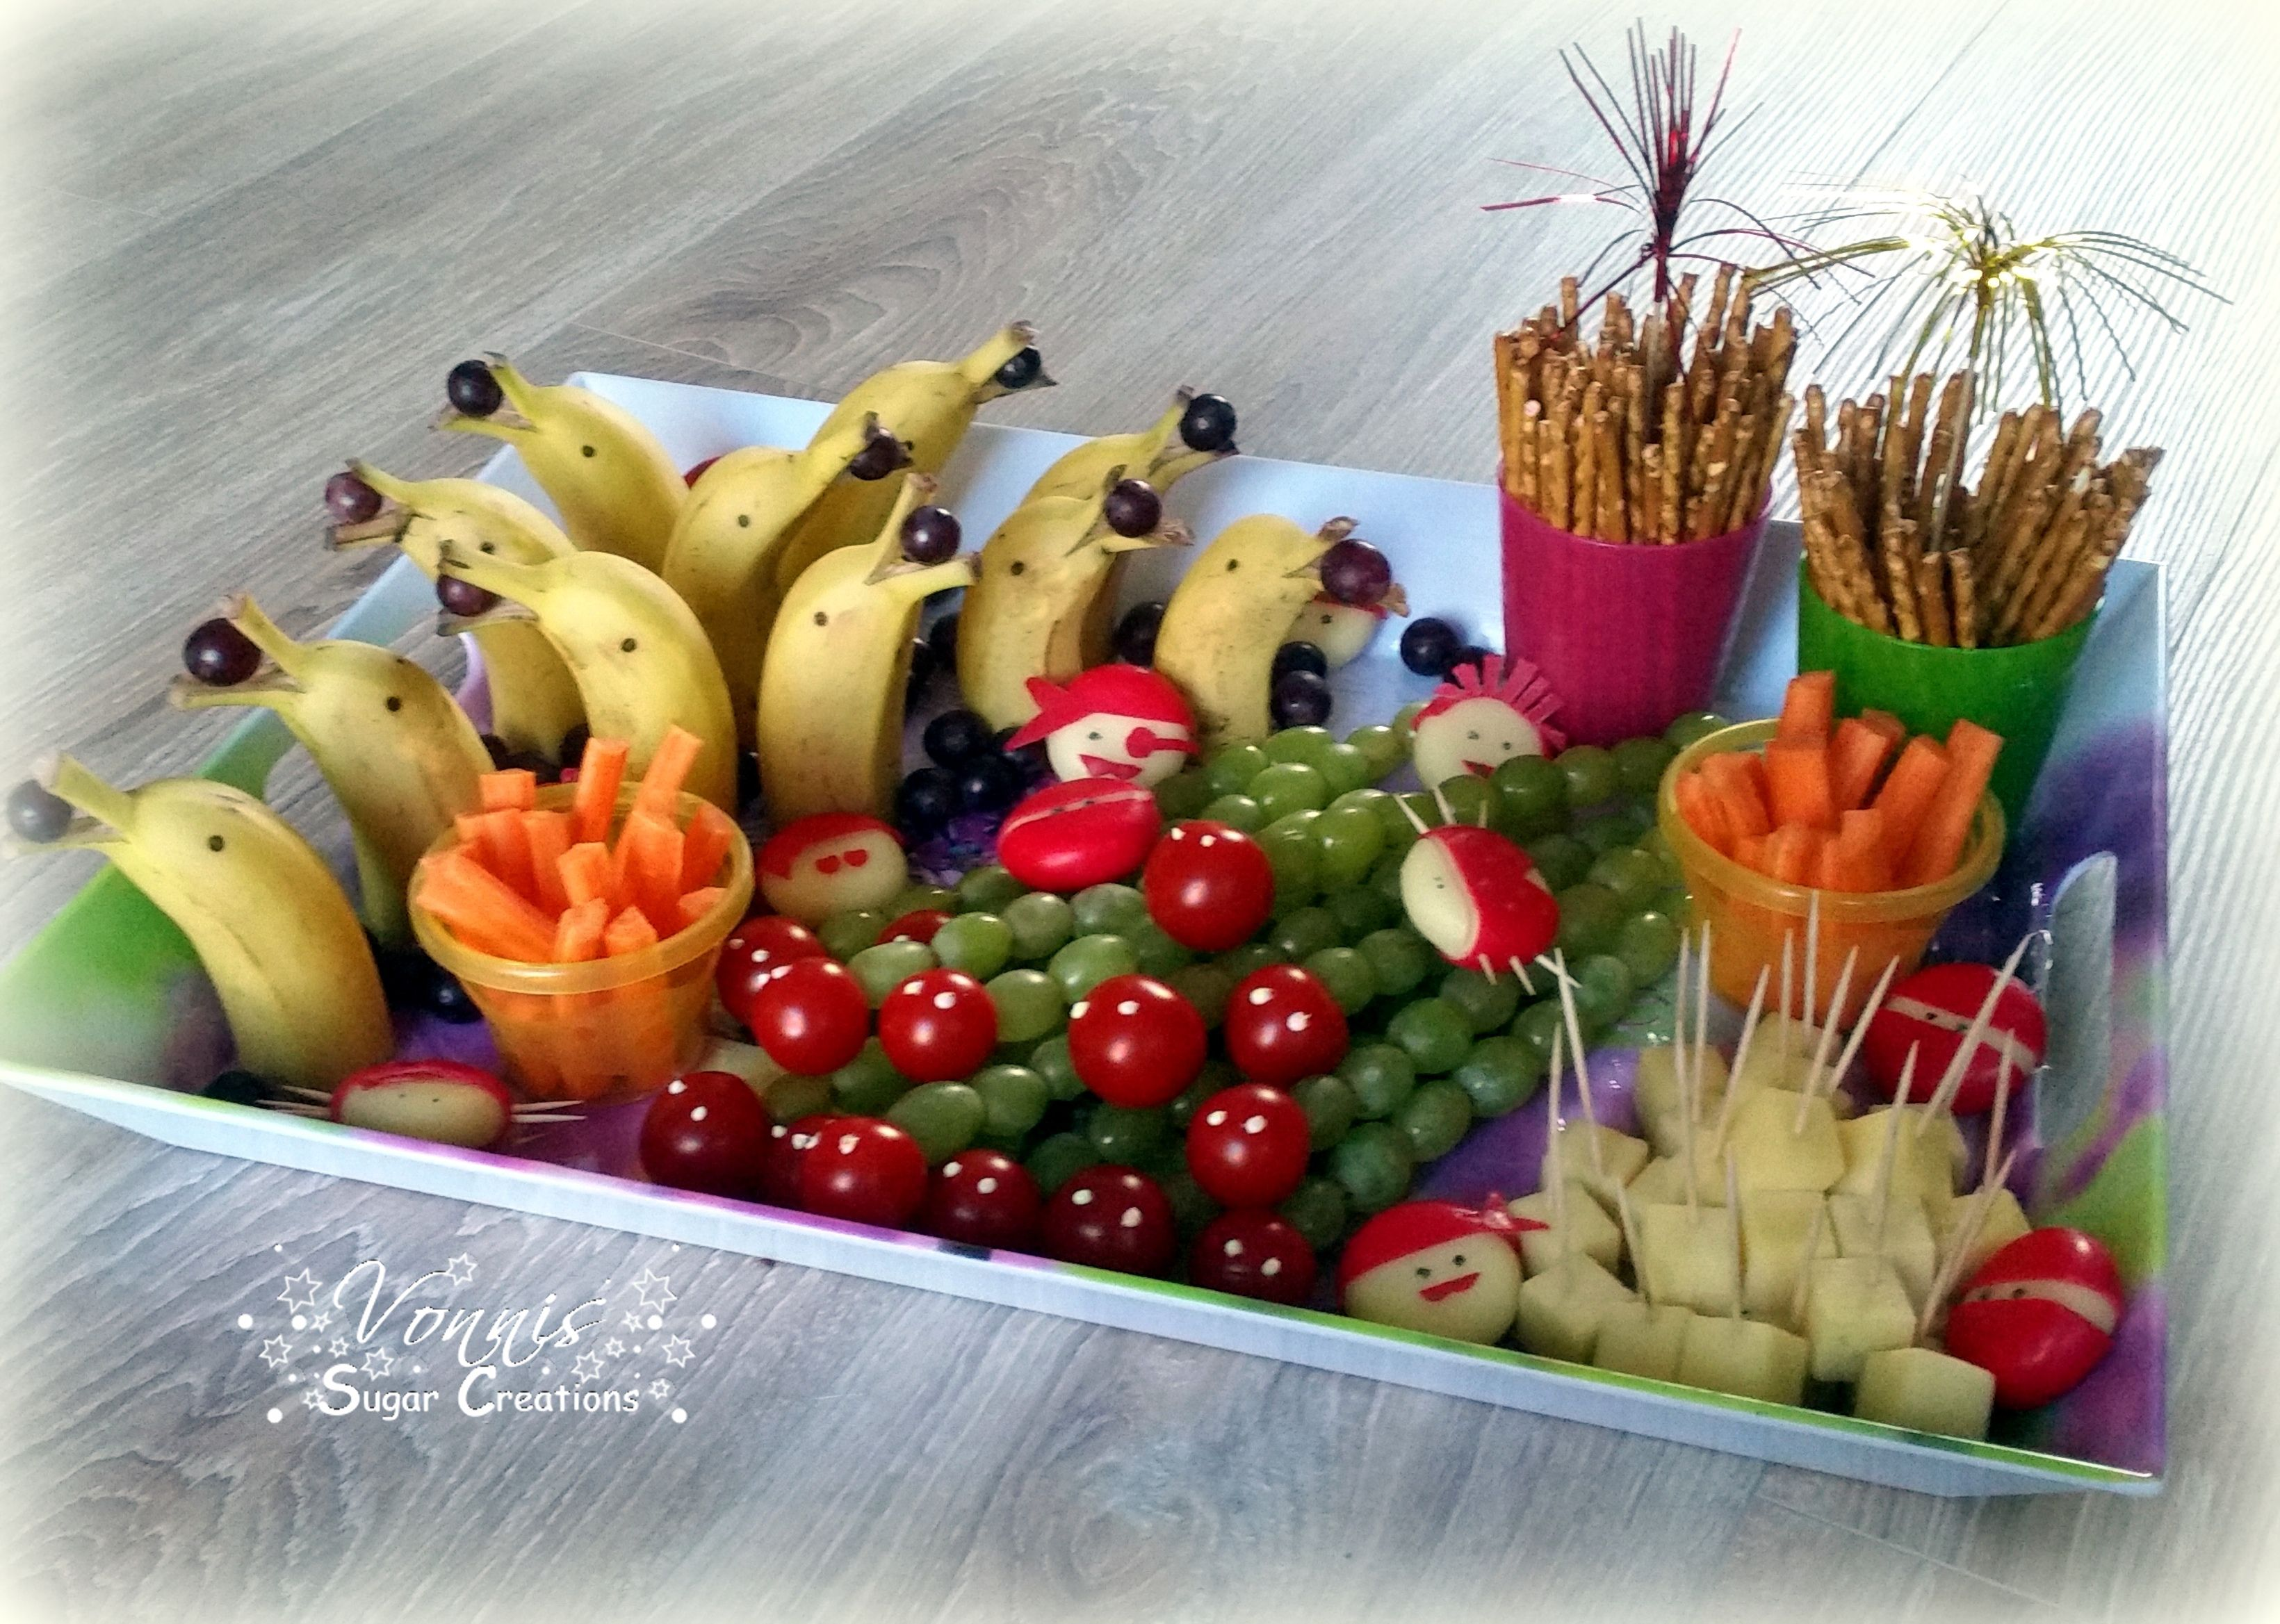 Obstplatte Kinder Kindergarten Dolphin Grapes Caterpillar Cheese Tomato Salt